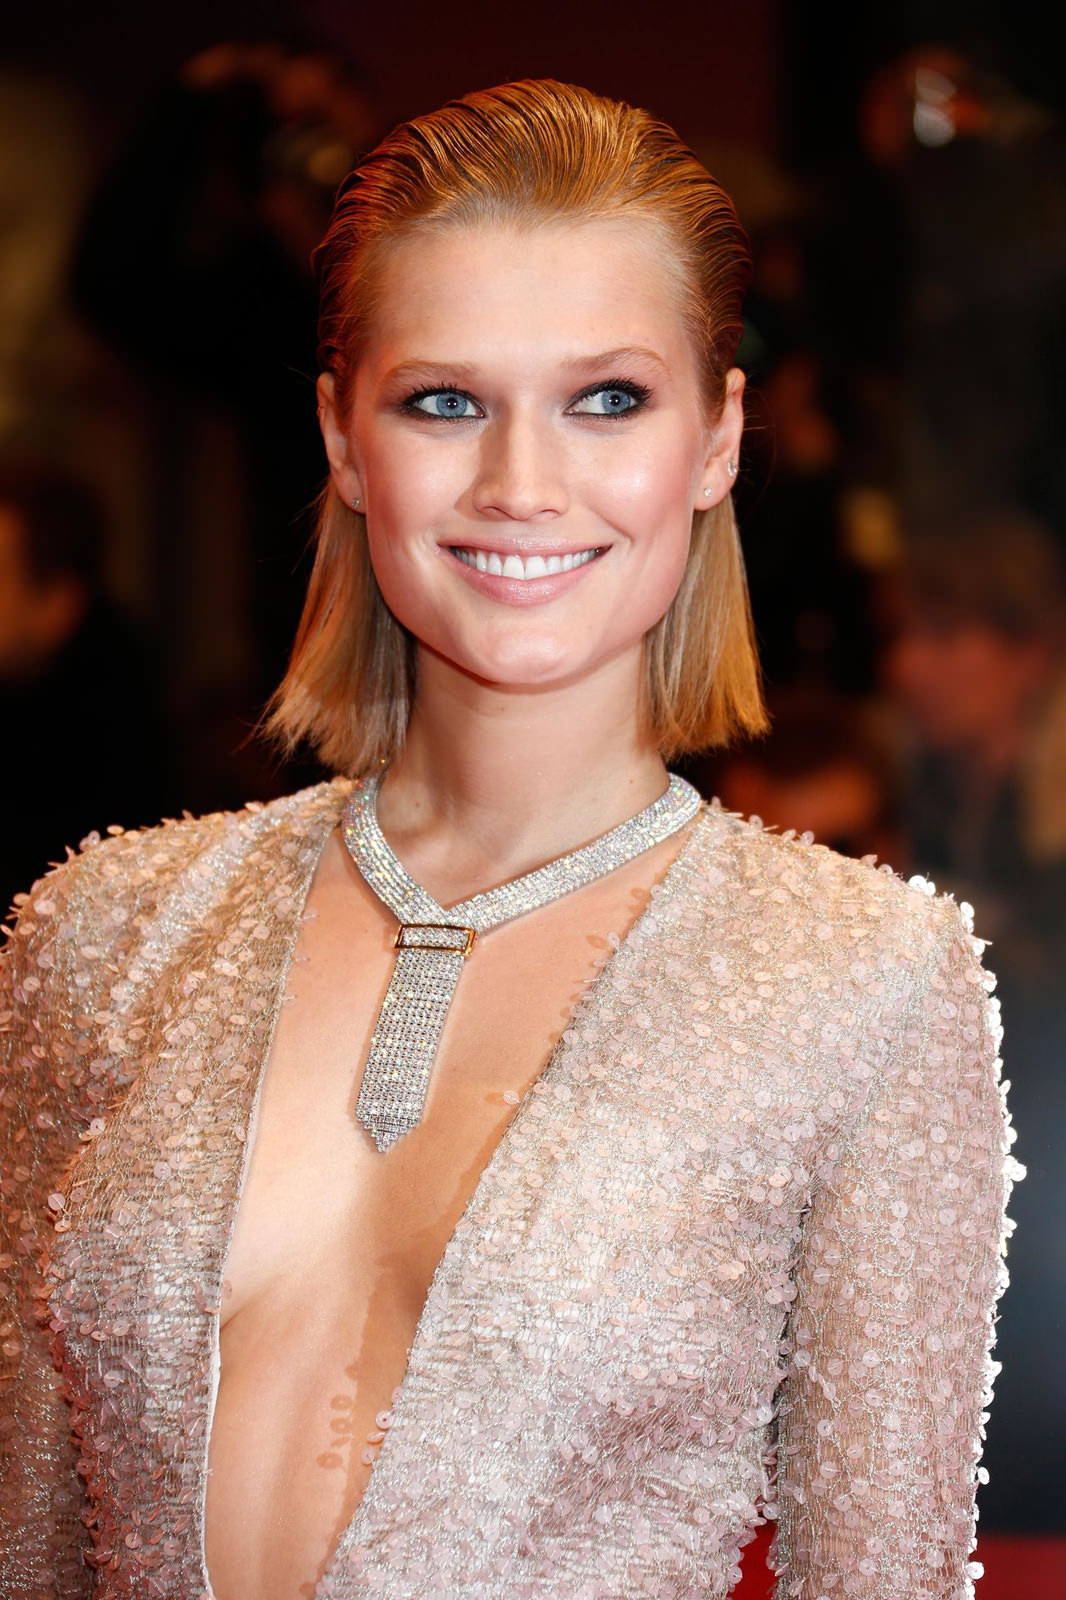 Toni Garrn Photo Gallery